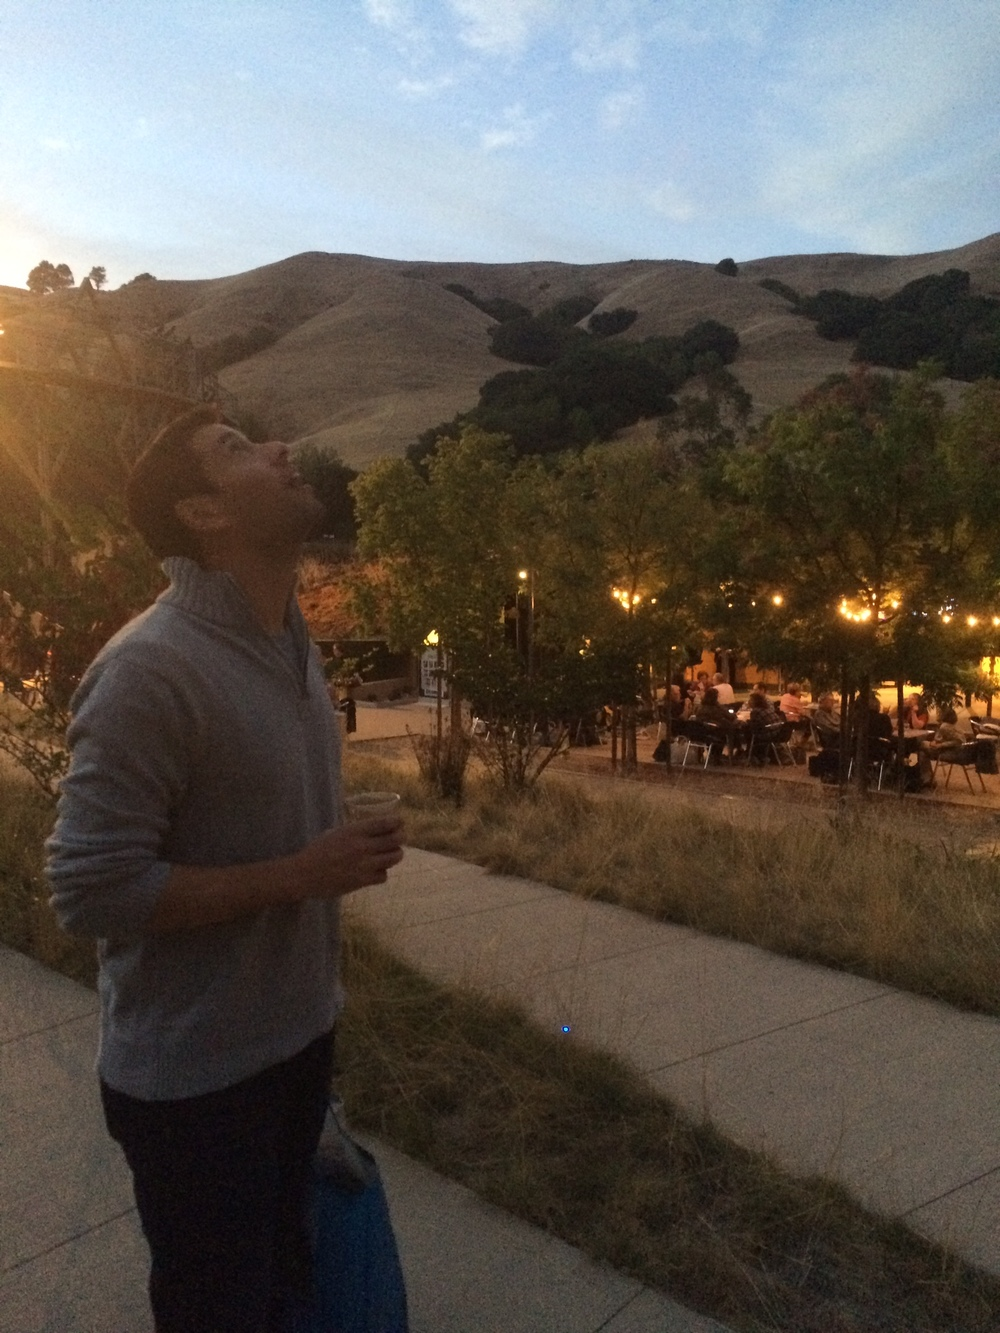 Handsome Hubs, enjoying some wine, sunset, and amazing scenery at Bruns Amphitheater prior to  King Lear